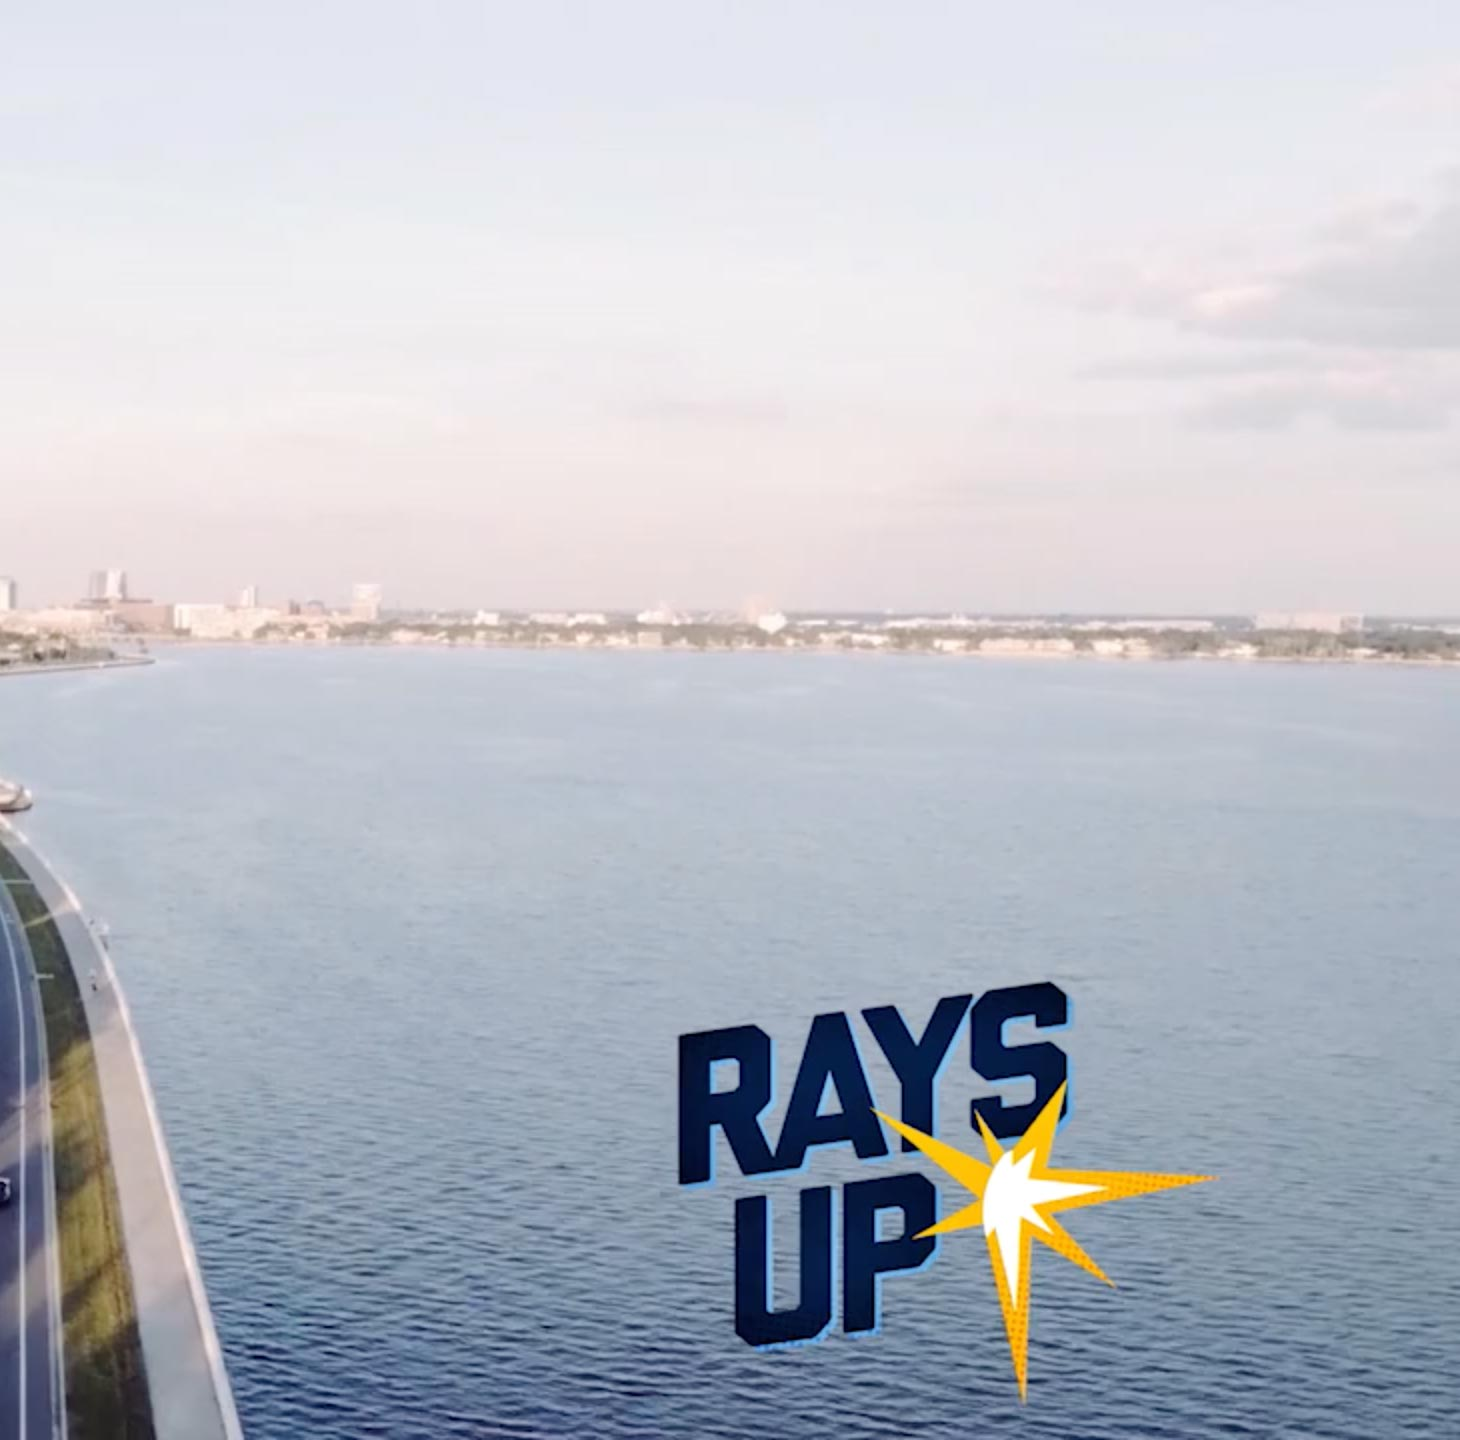 Tampa Bay Rays TV spot still